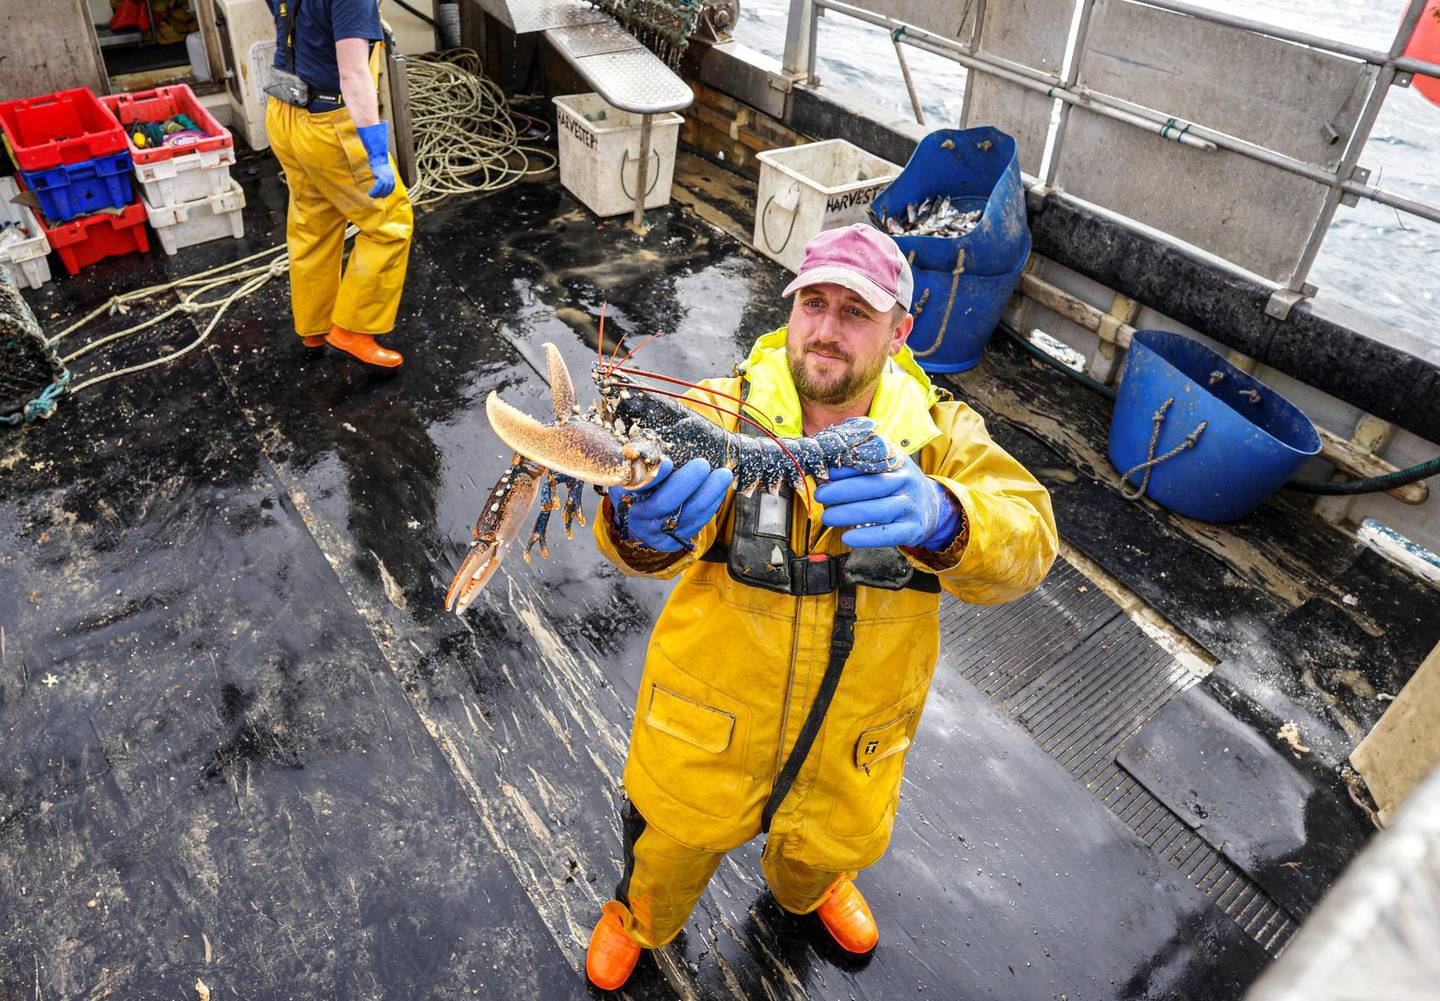 FALMOUTH, ENGLAND - MARCH 17: Crew member Paul Laity poses with a lobster on the Harvester II fishing trawler working four miles off The Manacles rocks on March 17, 2021 in Falmouth, Cornwall, England. The owners of Harvester II now sell their crab, lobster and fish exclusively to local markets. Still keen to service their traditional sales to EU customers who appreciate their produce, the fisherman expect the current Brexit export difficulties to continue for several months which has led the drive to find local sales to fishmongers, restaurants when the Covid lockdown ends, and direct to the general public.  (Photo by Hugh Hastings/Getty Images)